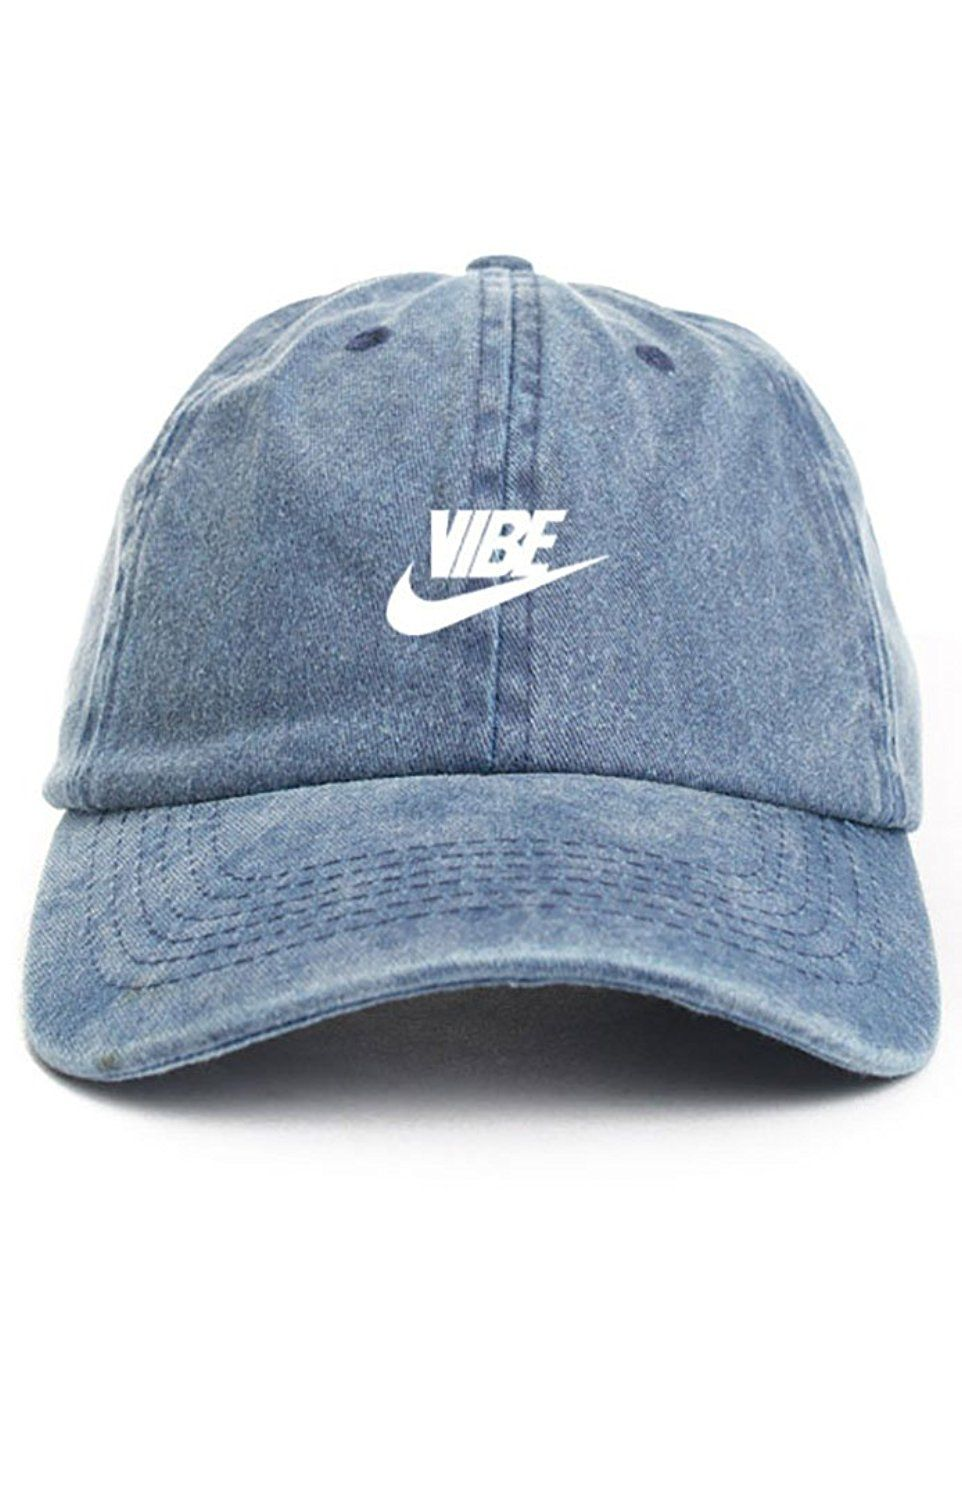 5ef22ef174519 Just Vibe Swoosh Denim w  White Dad Hat at Amazon Men s Clothing store